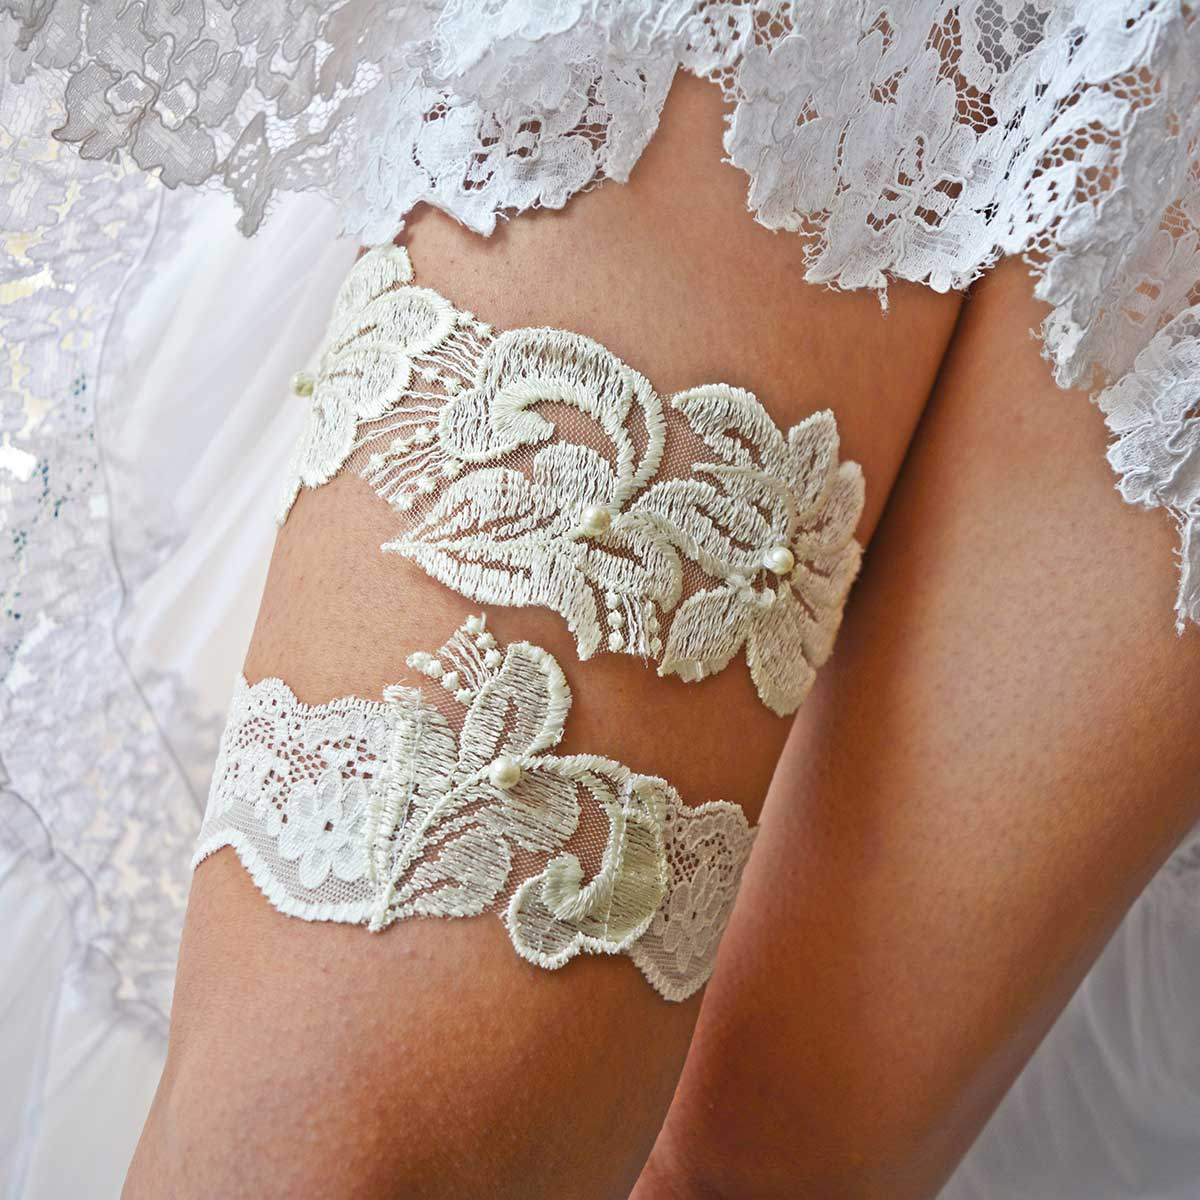 White Bridal Garter With Pearls & Flower Applique Handmade